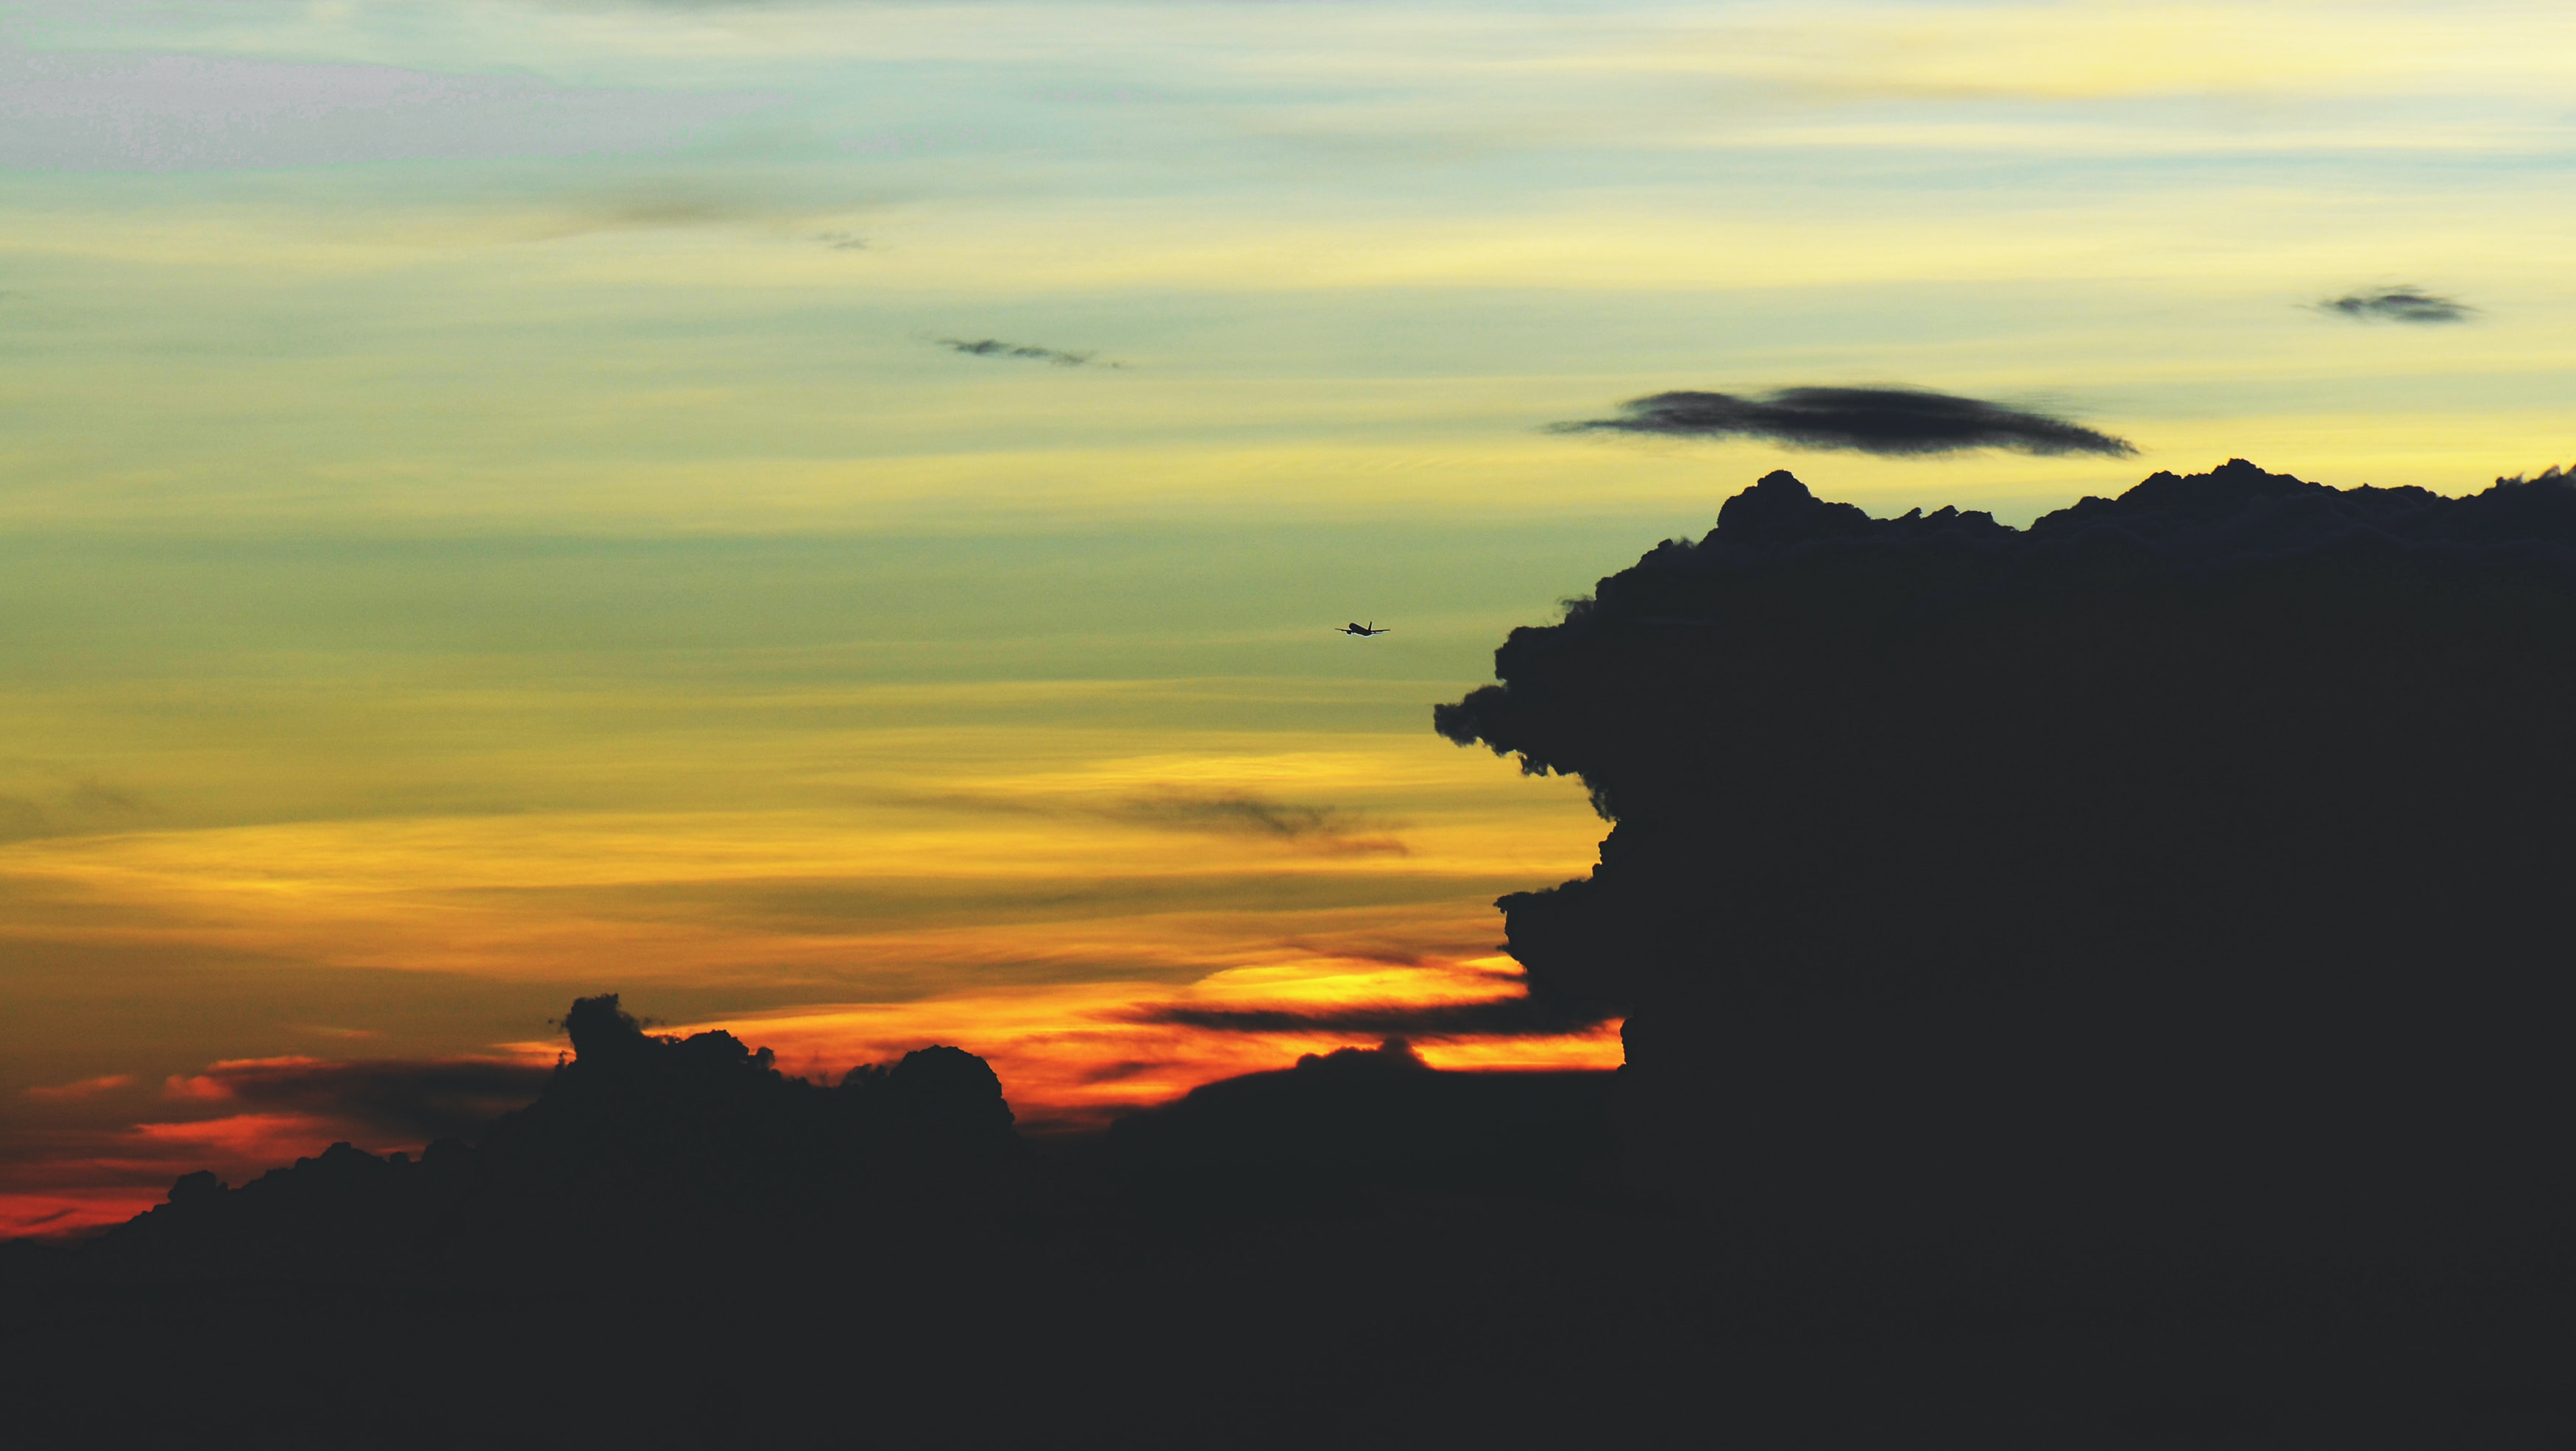 silhouette photo of scenery